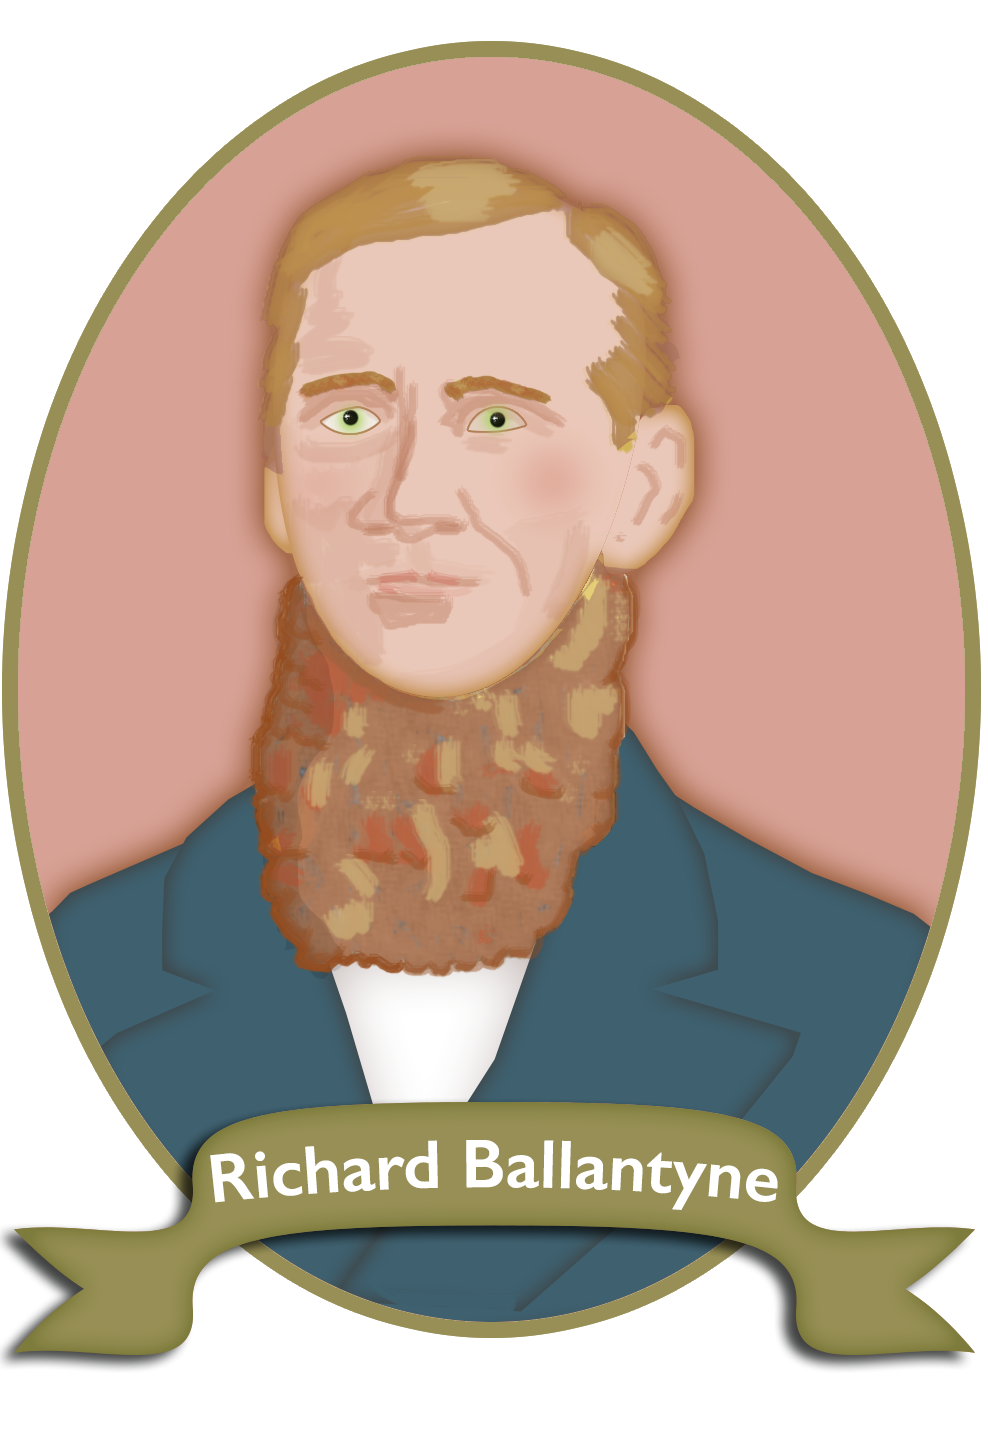 Lds clipart prophet. Sunday school latterdayvillage richard